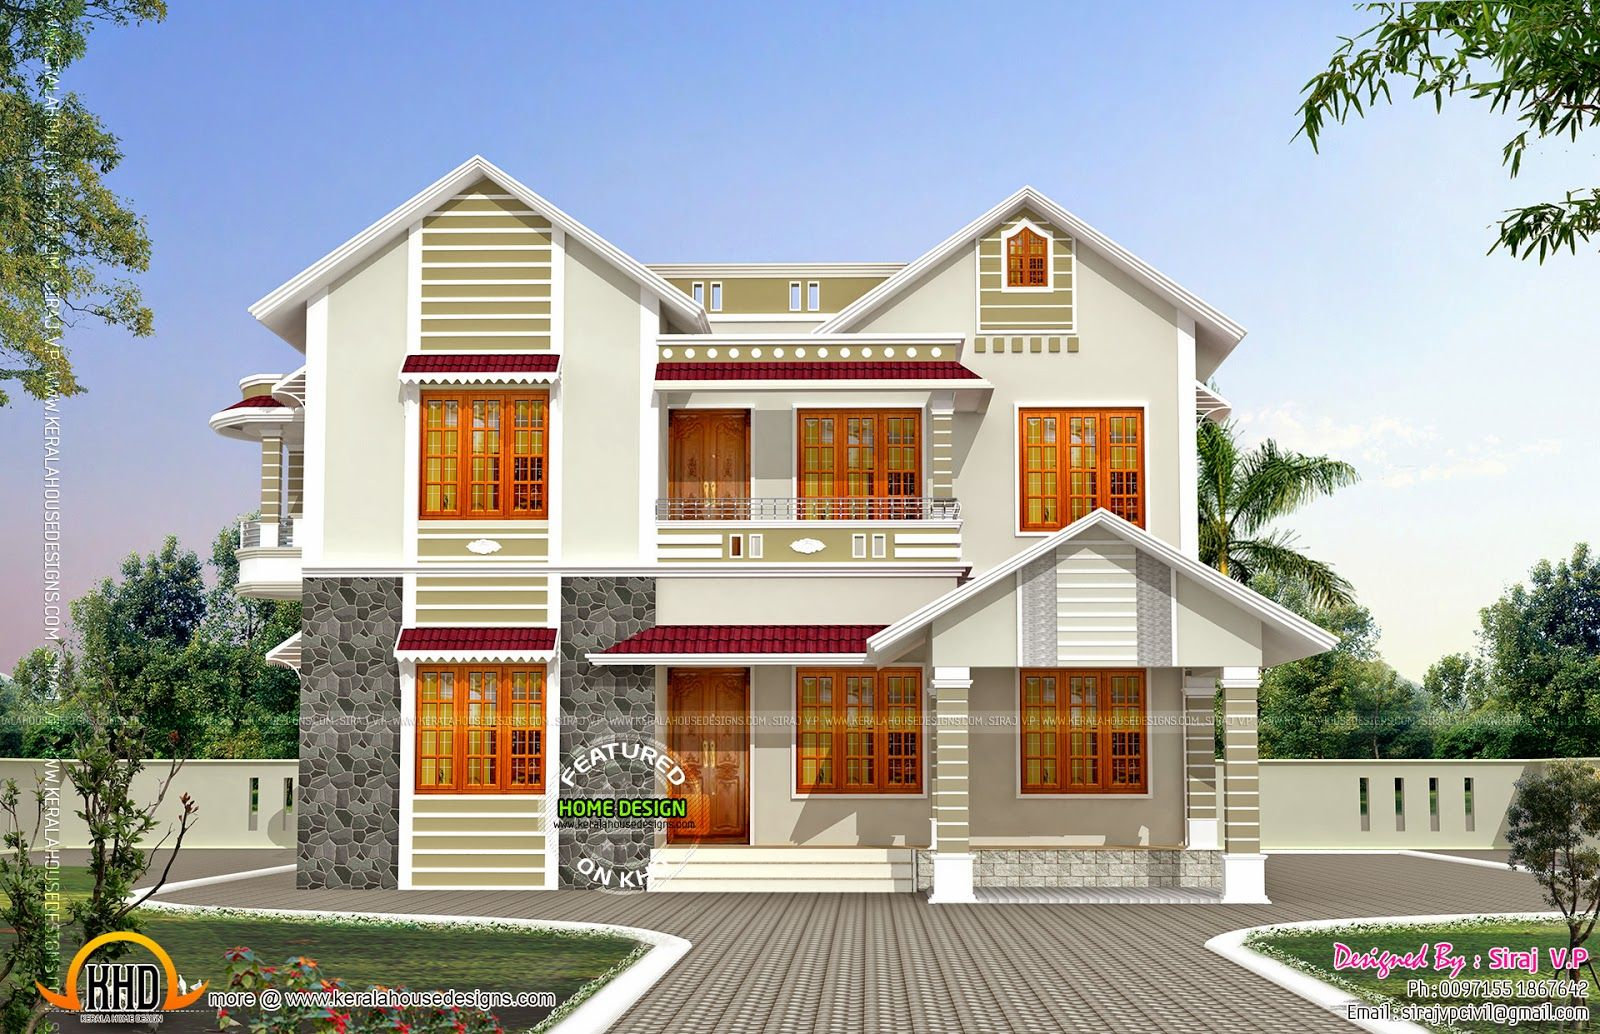 Simple House Designs Front View House Design Photos Simple House Design Kerala House Design